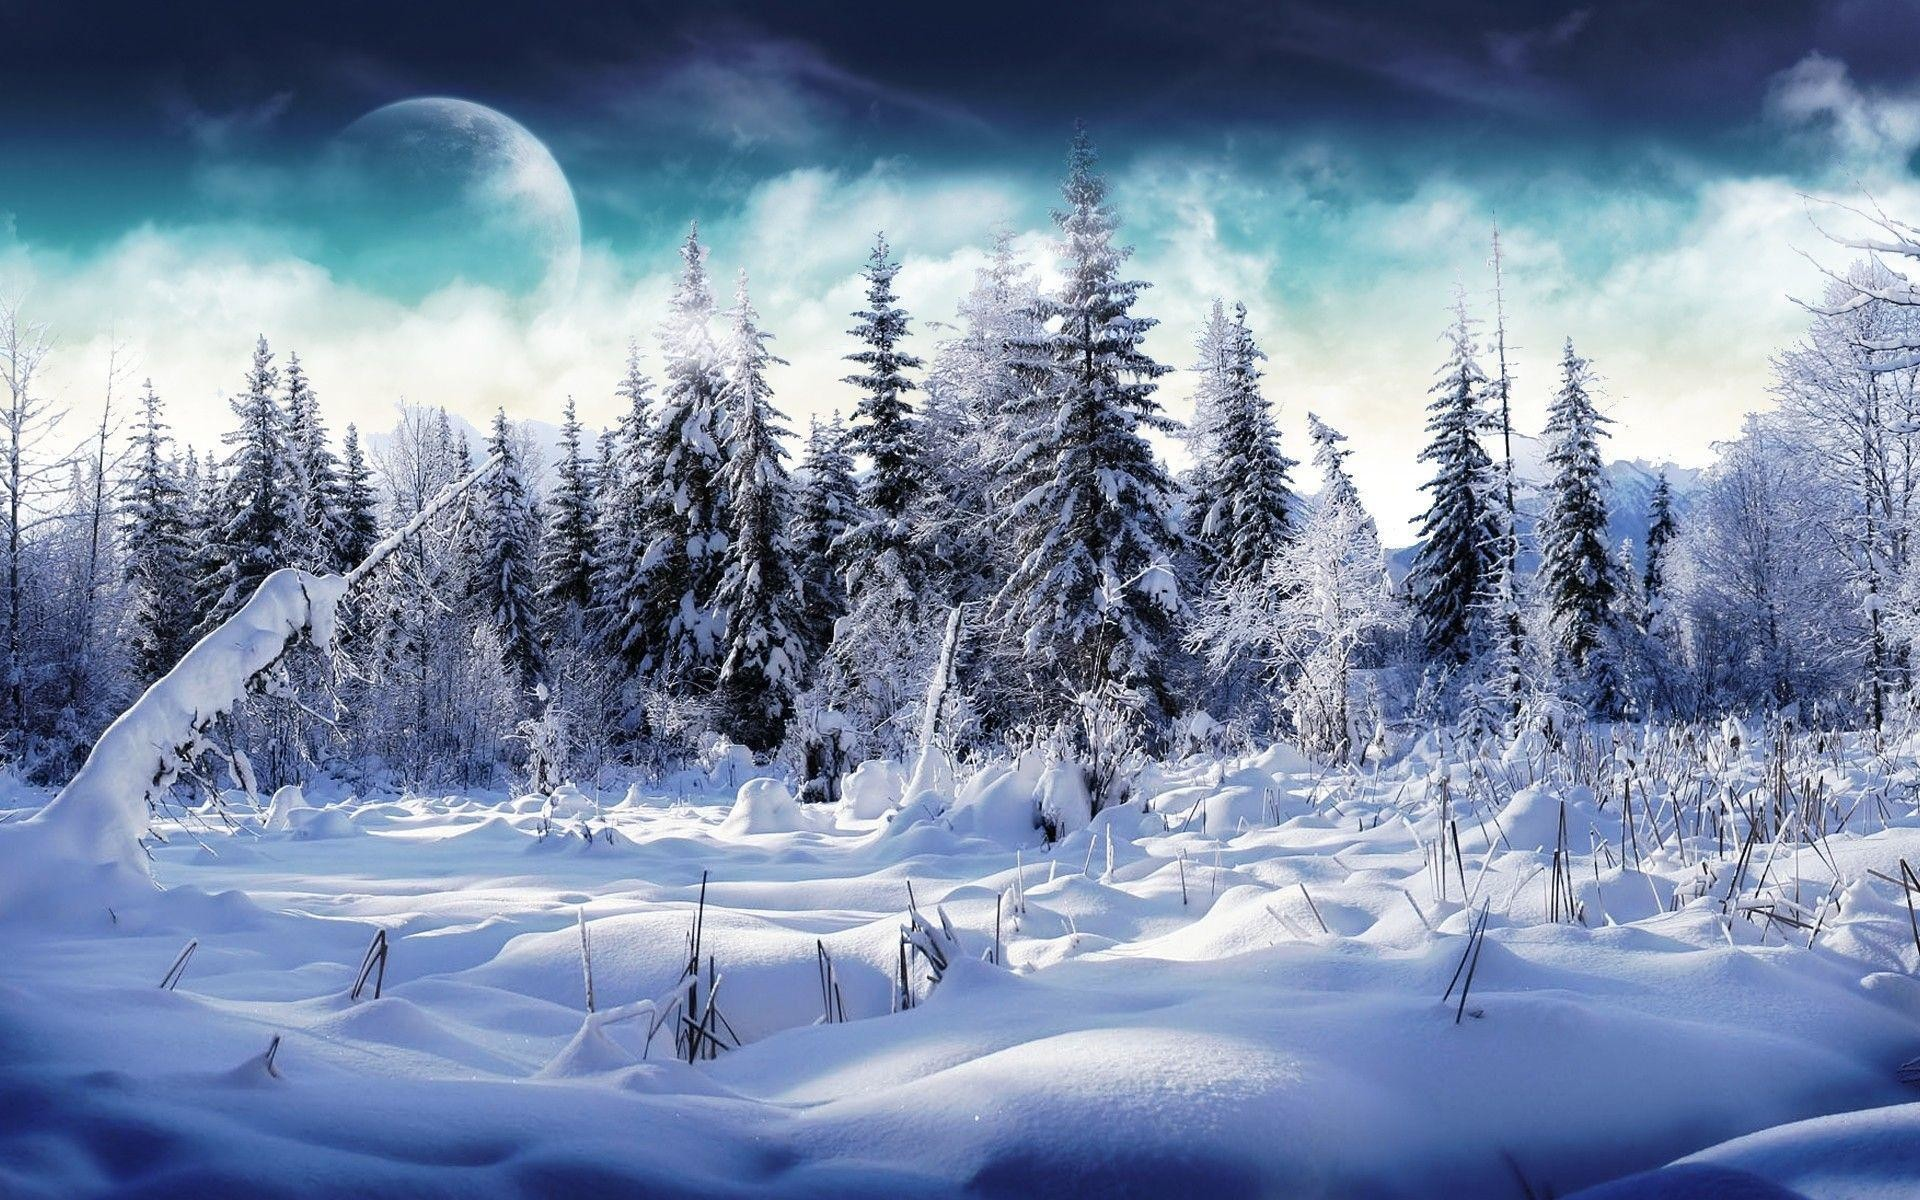 1920x1200 Wallpapers For > Pretty Winter Backgrounds For Desktops